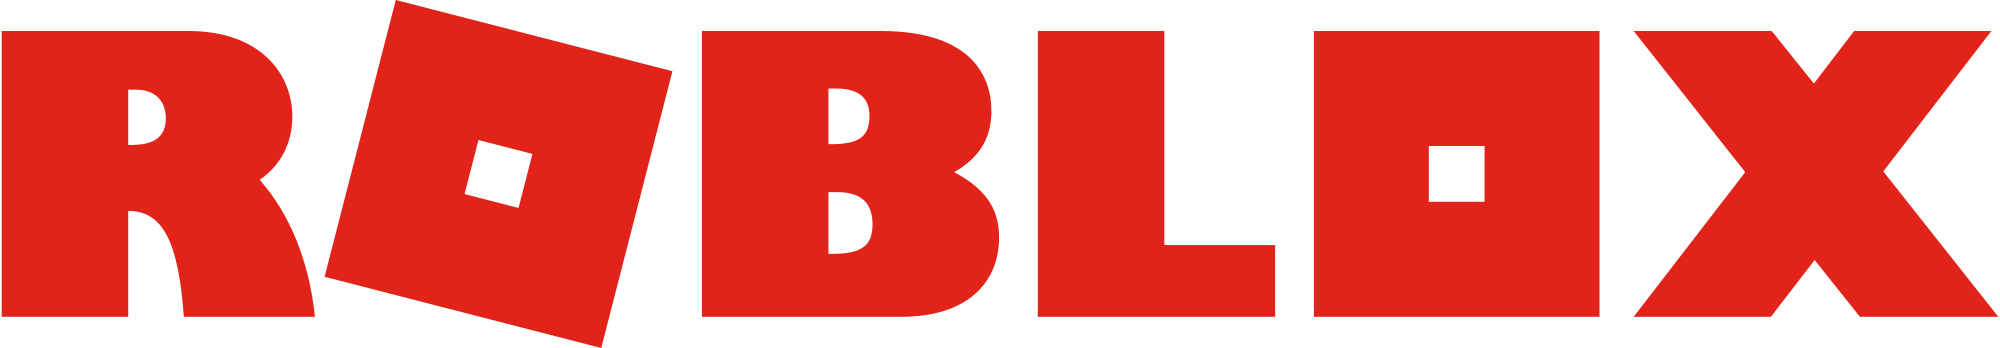 Roblox logo png. File svg wikimedia commons